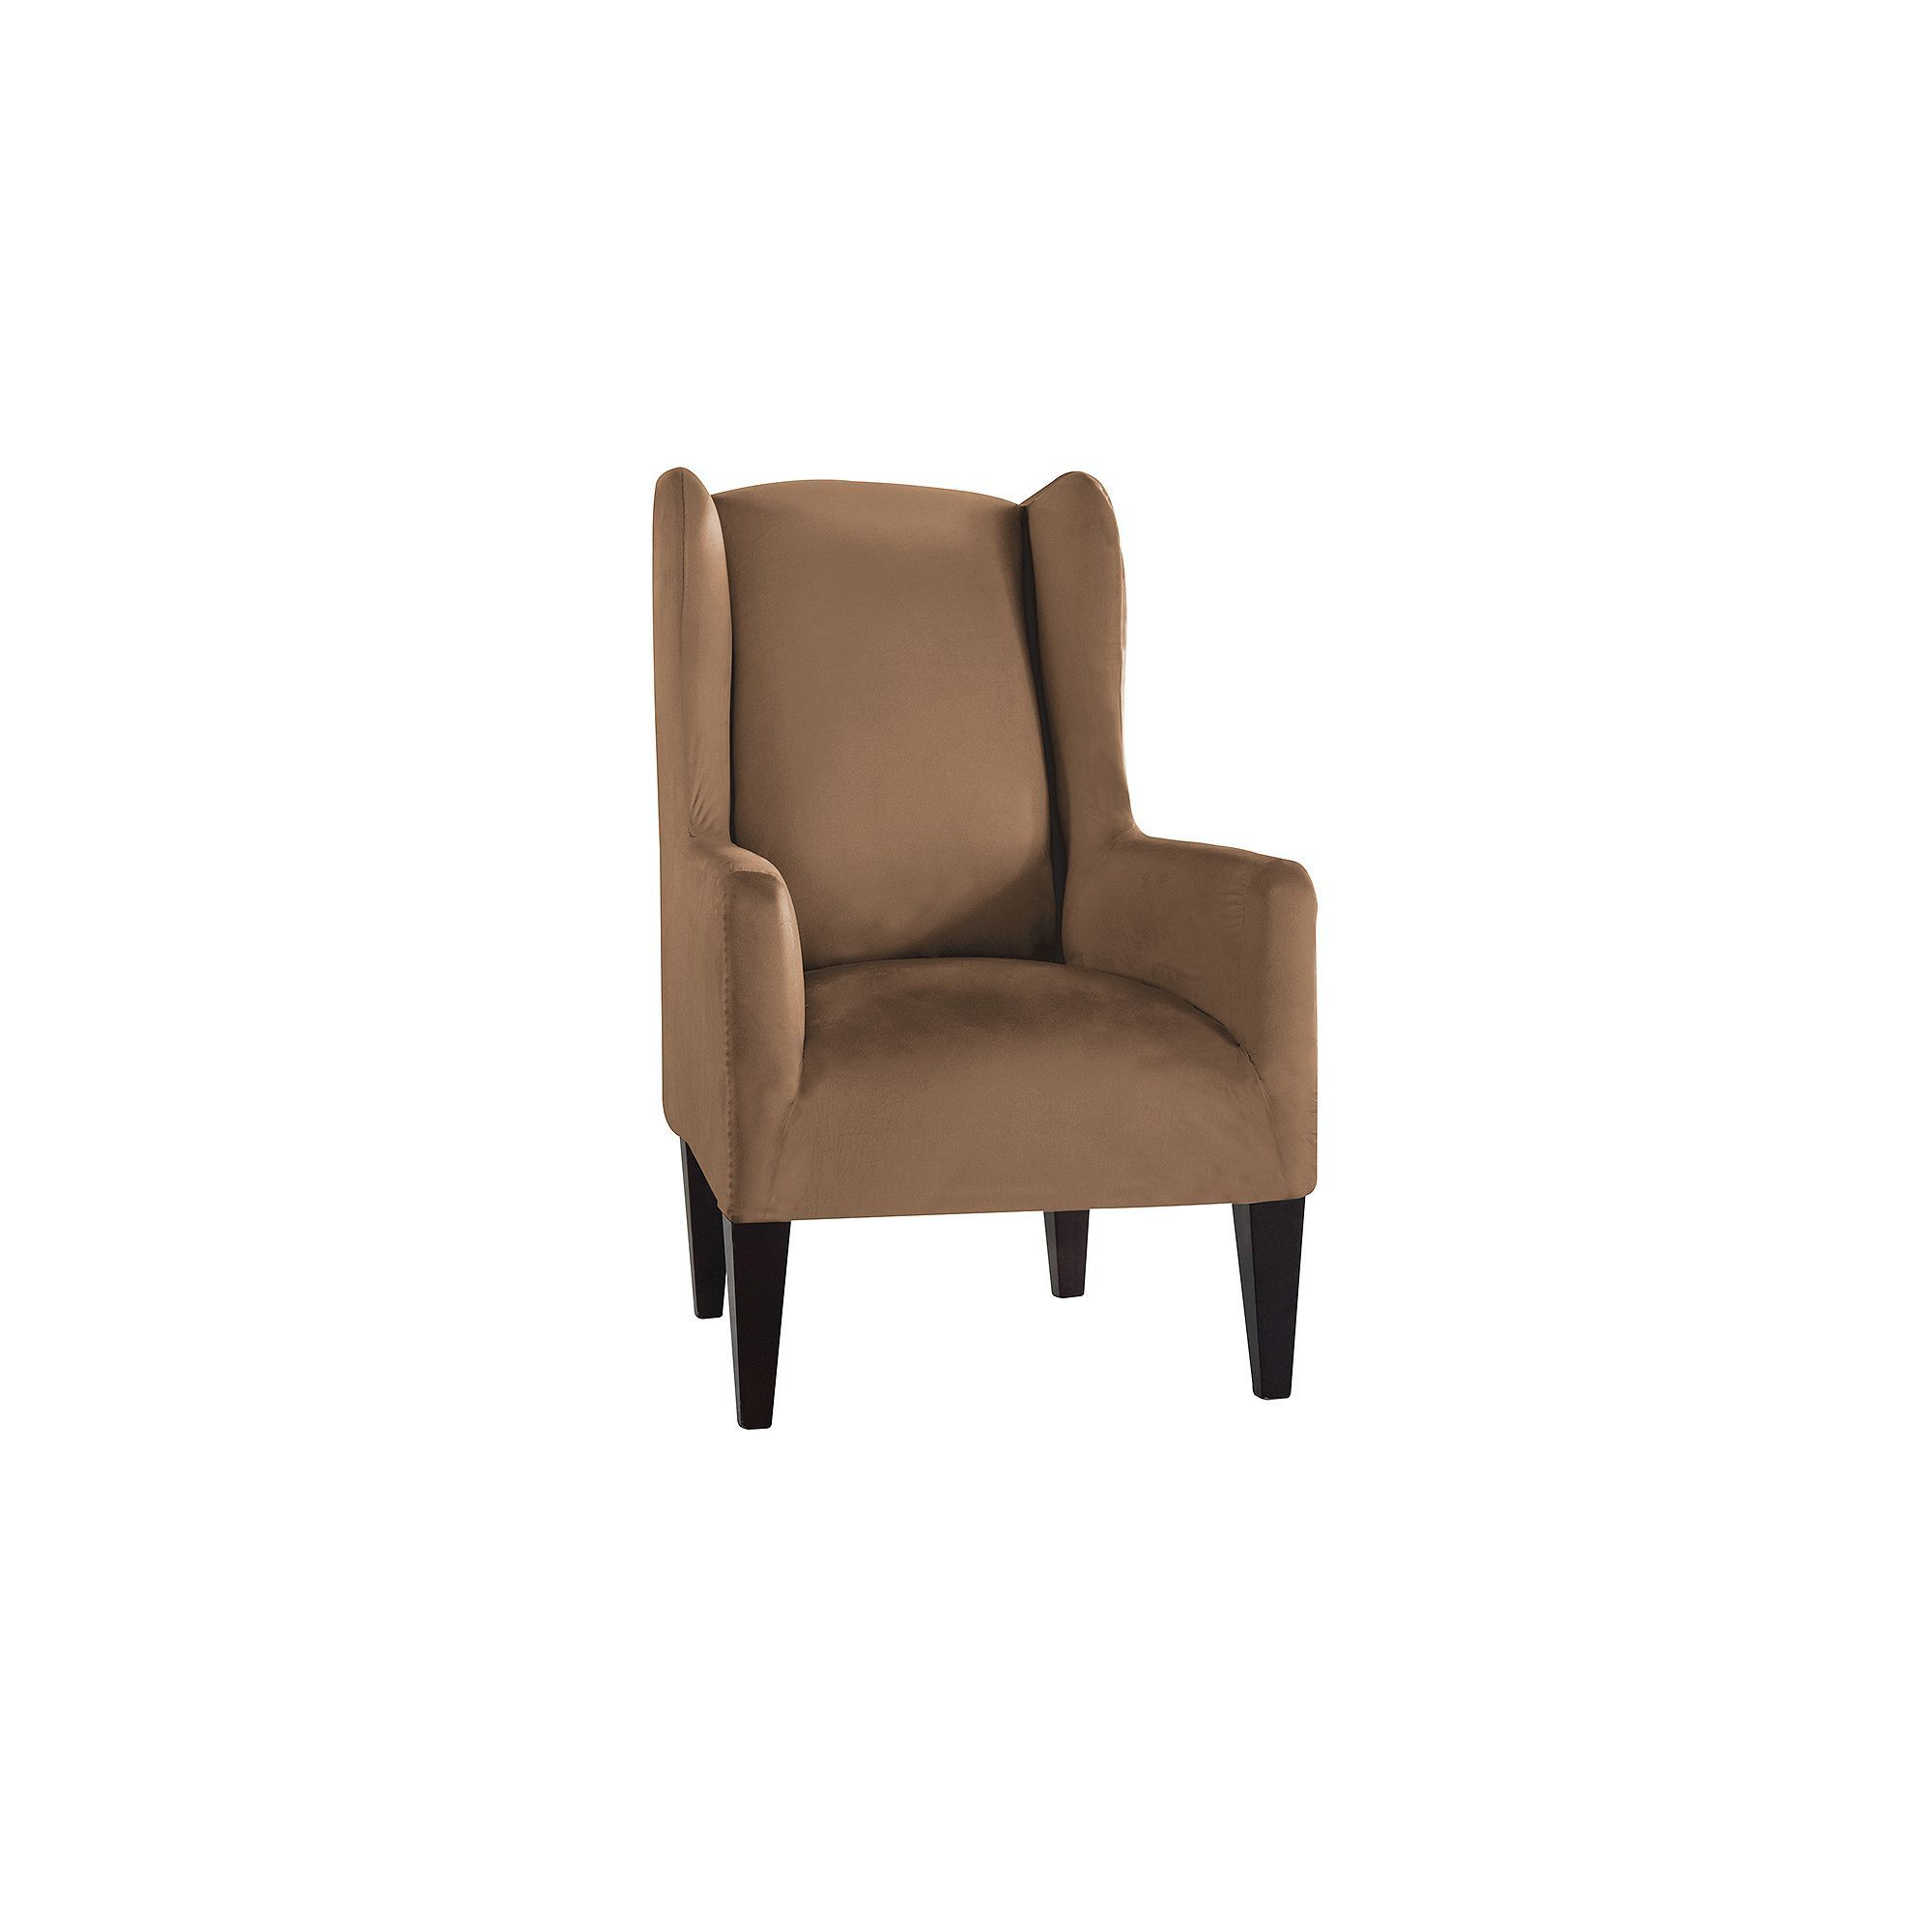 Serta Stretch Fit Wingback Chair Slipcover, Beig/Green (Beig/Khaki)